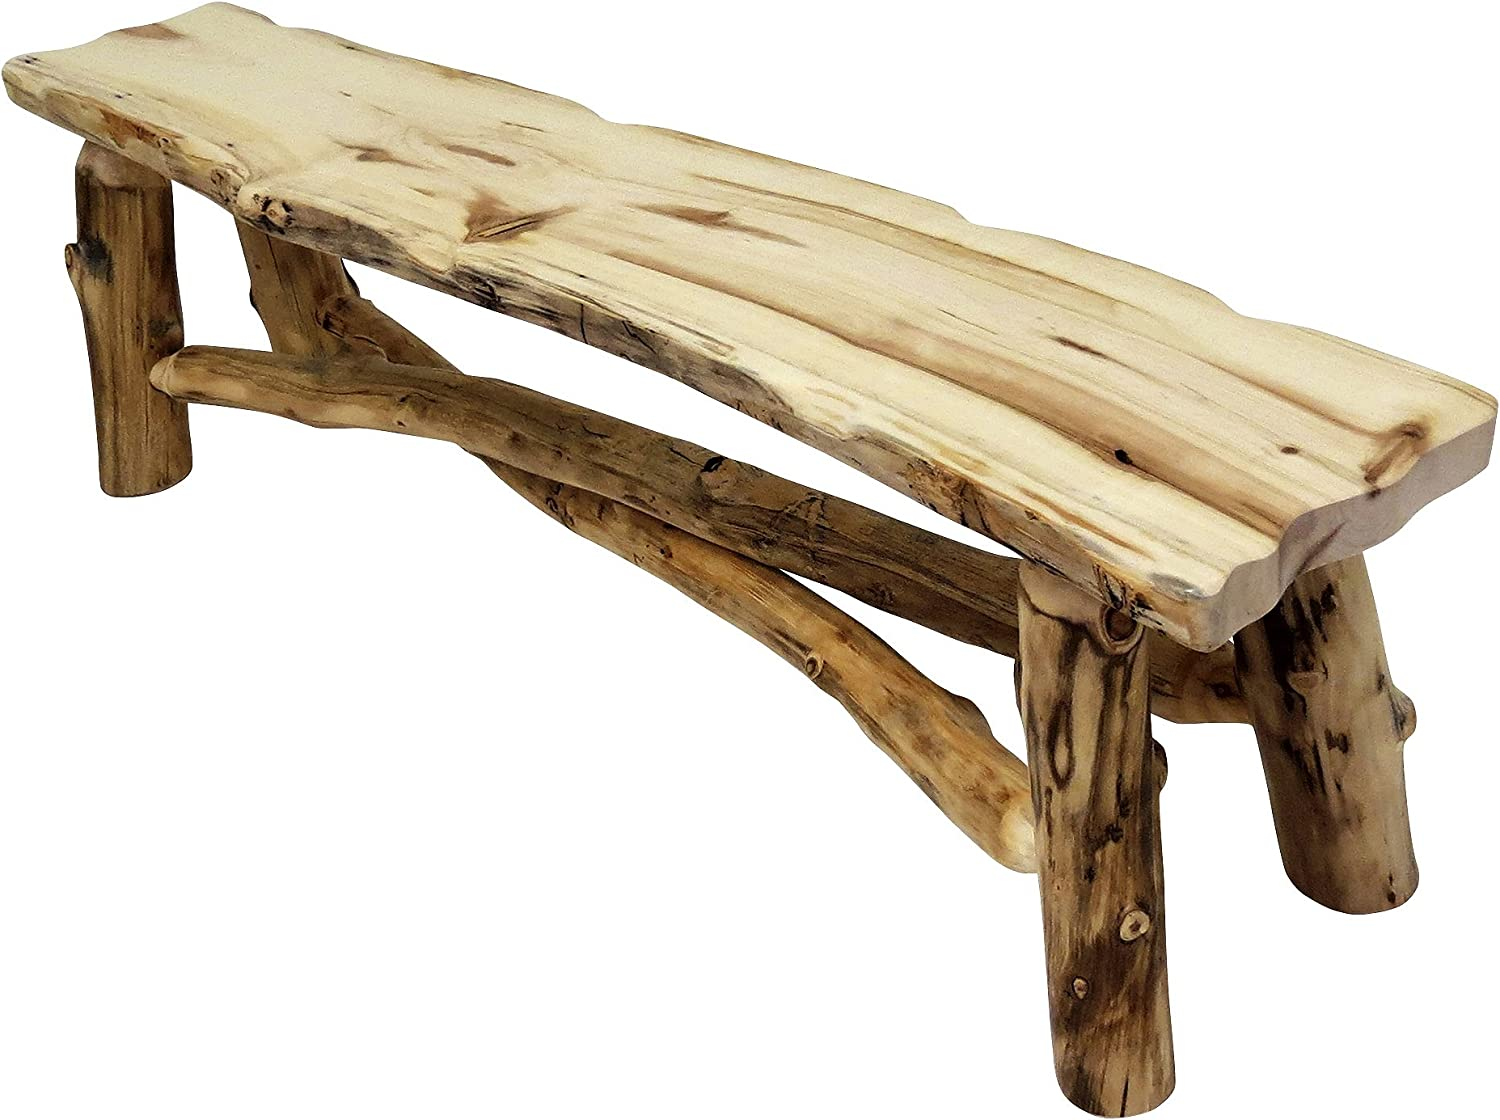 Mountain Woods Furniture Aspen Grizzly Collection Bench, 5', Bronze Aspen Finish